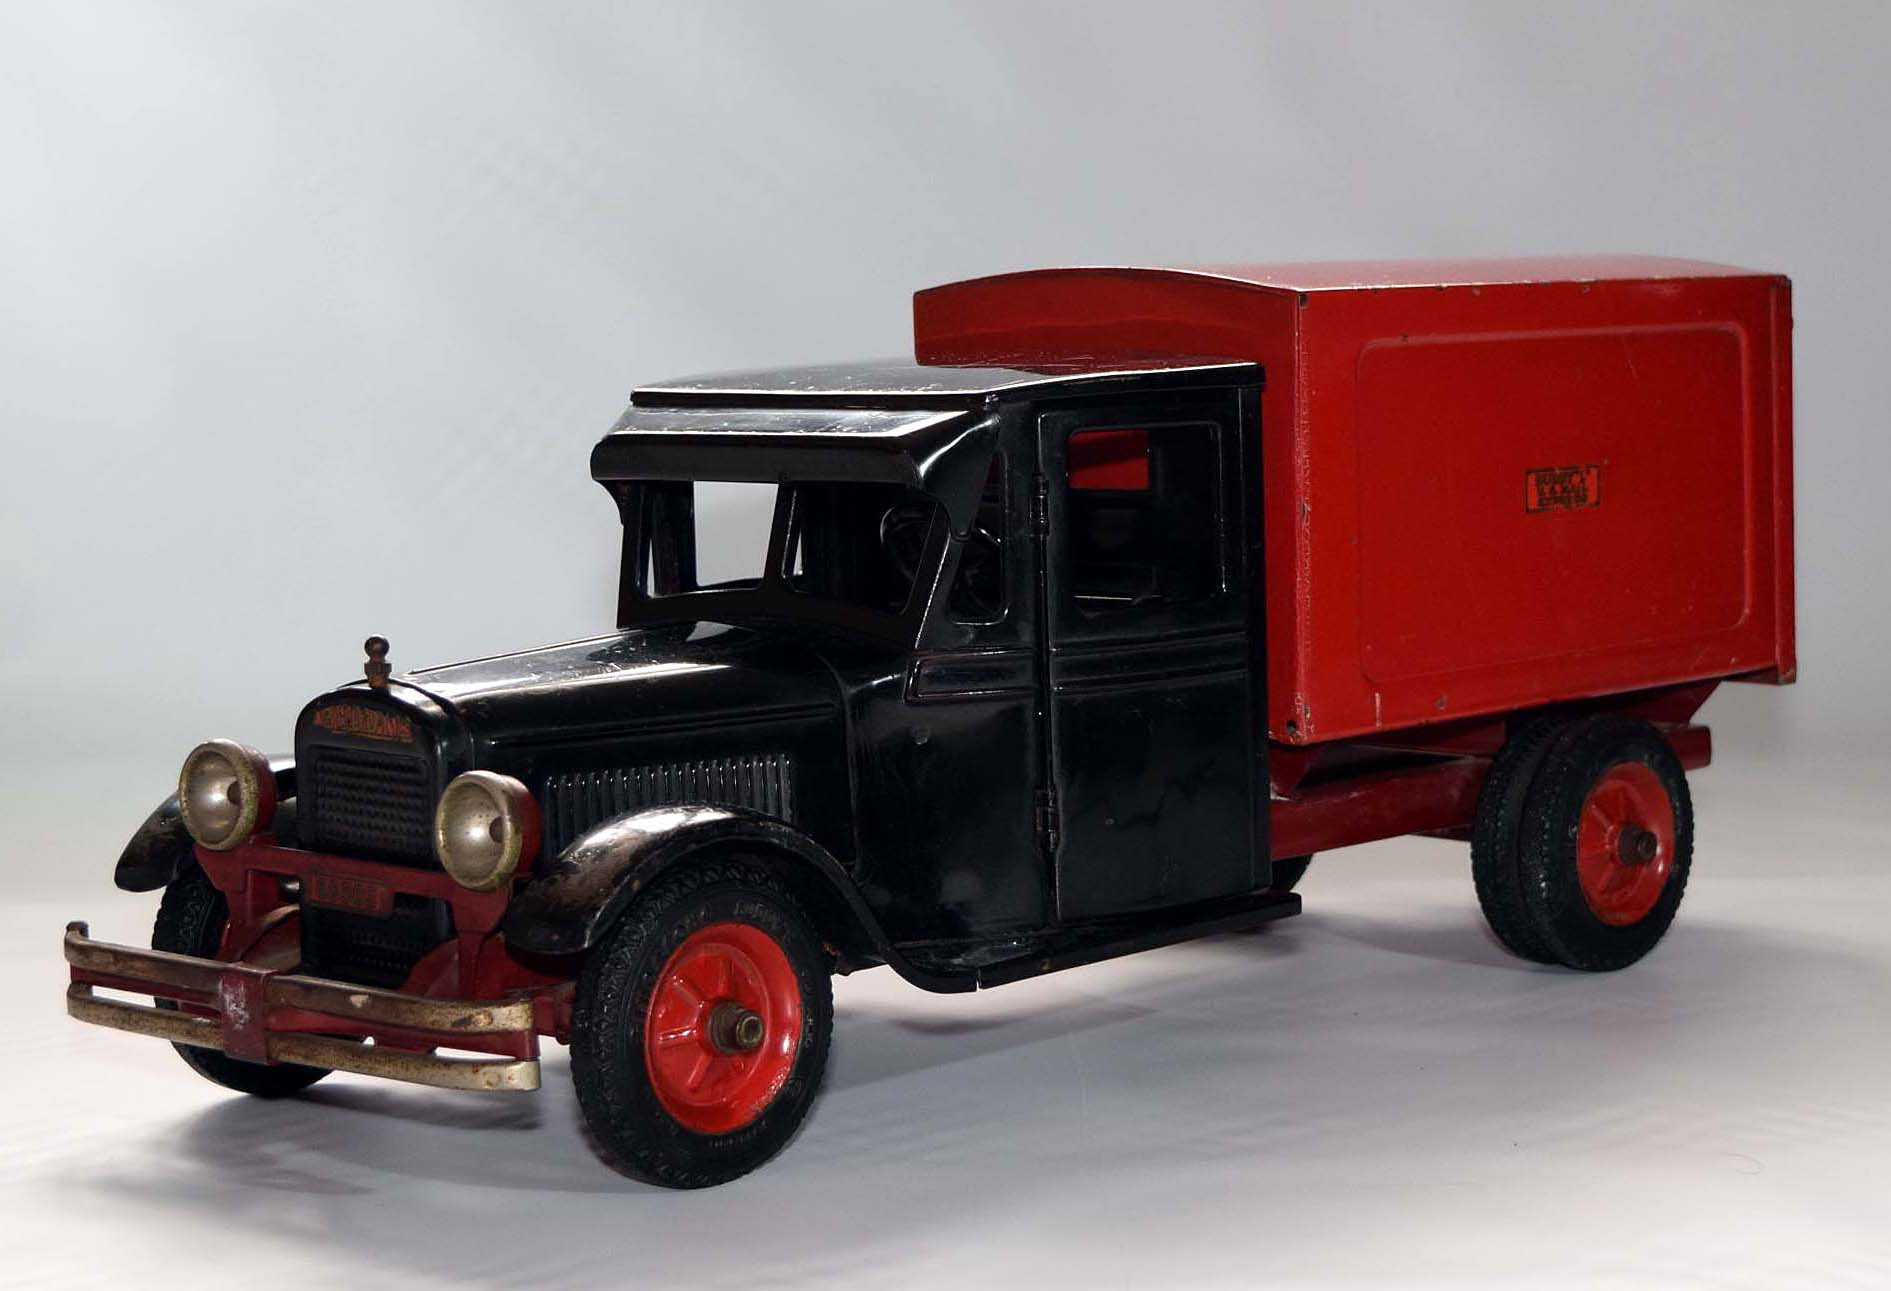 Antique Trucks For Sale >> Antique Buddy L Fire Truck Wanted ~ Free Toy Appraisals